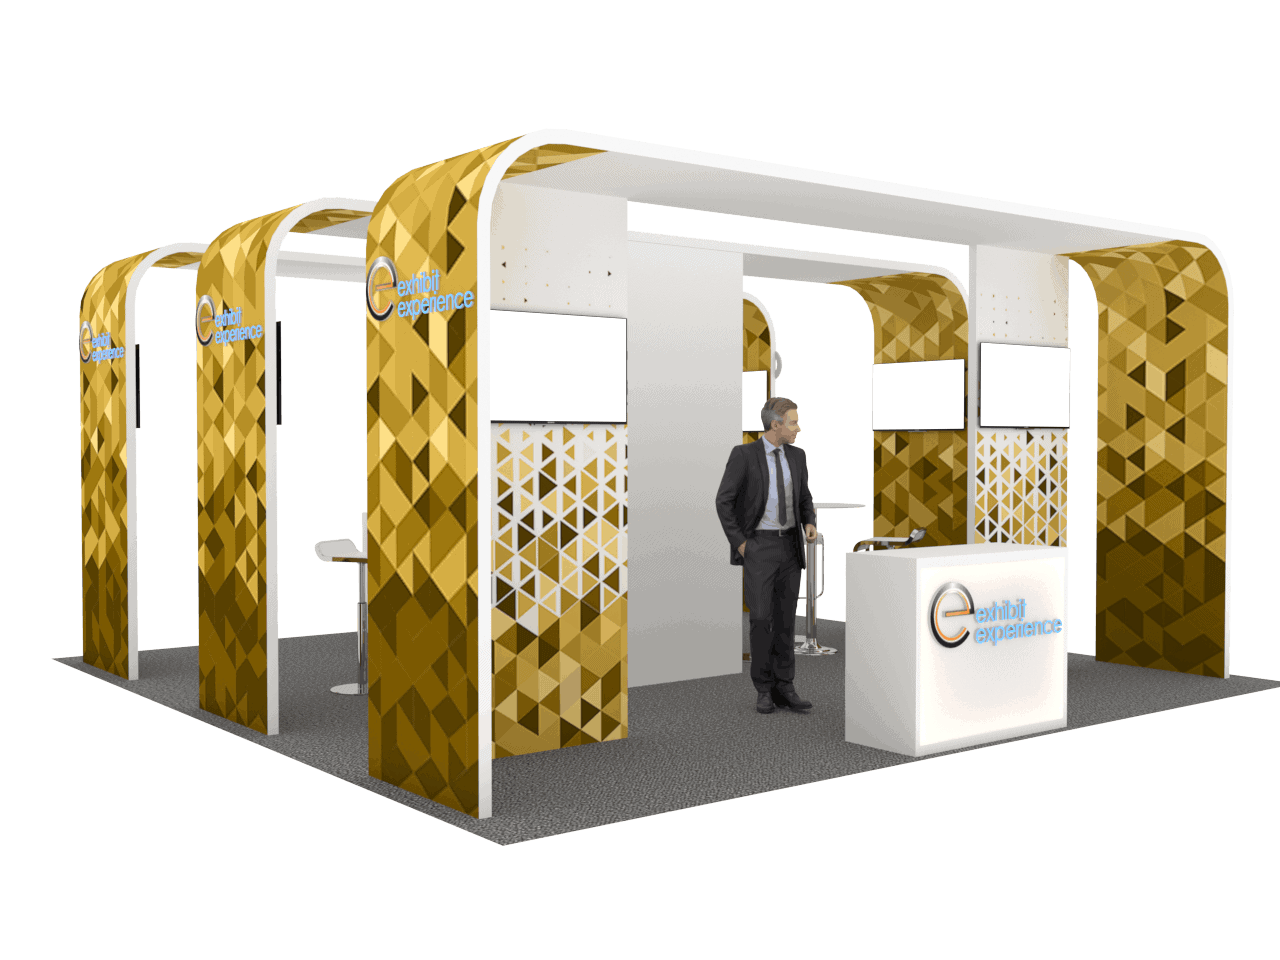 20 x 20 Local Trade Show Booth Rental